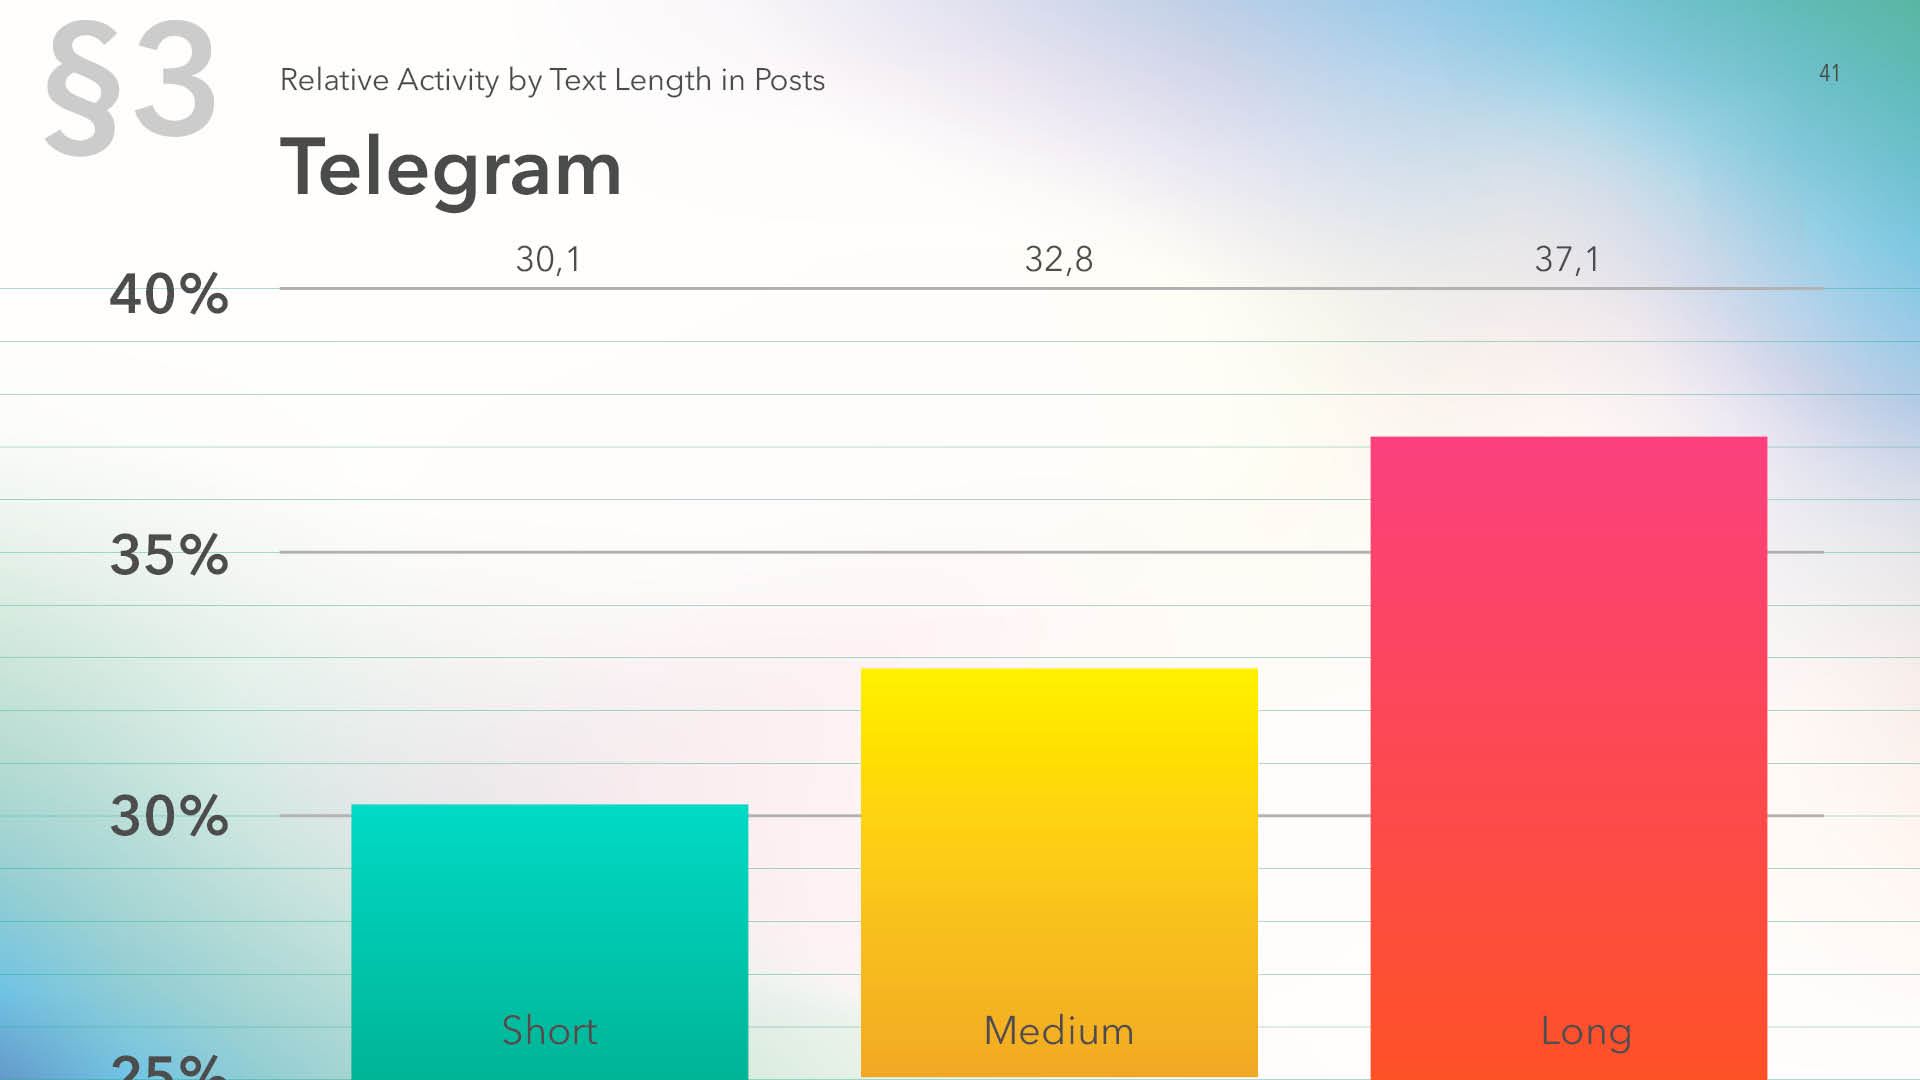 Relative activity on Telegram by text length in posts